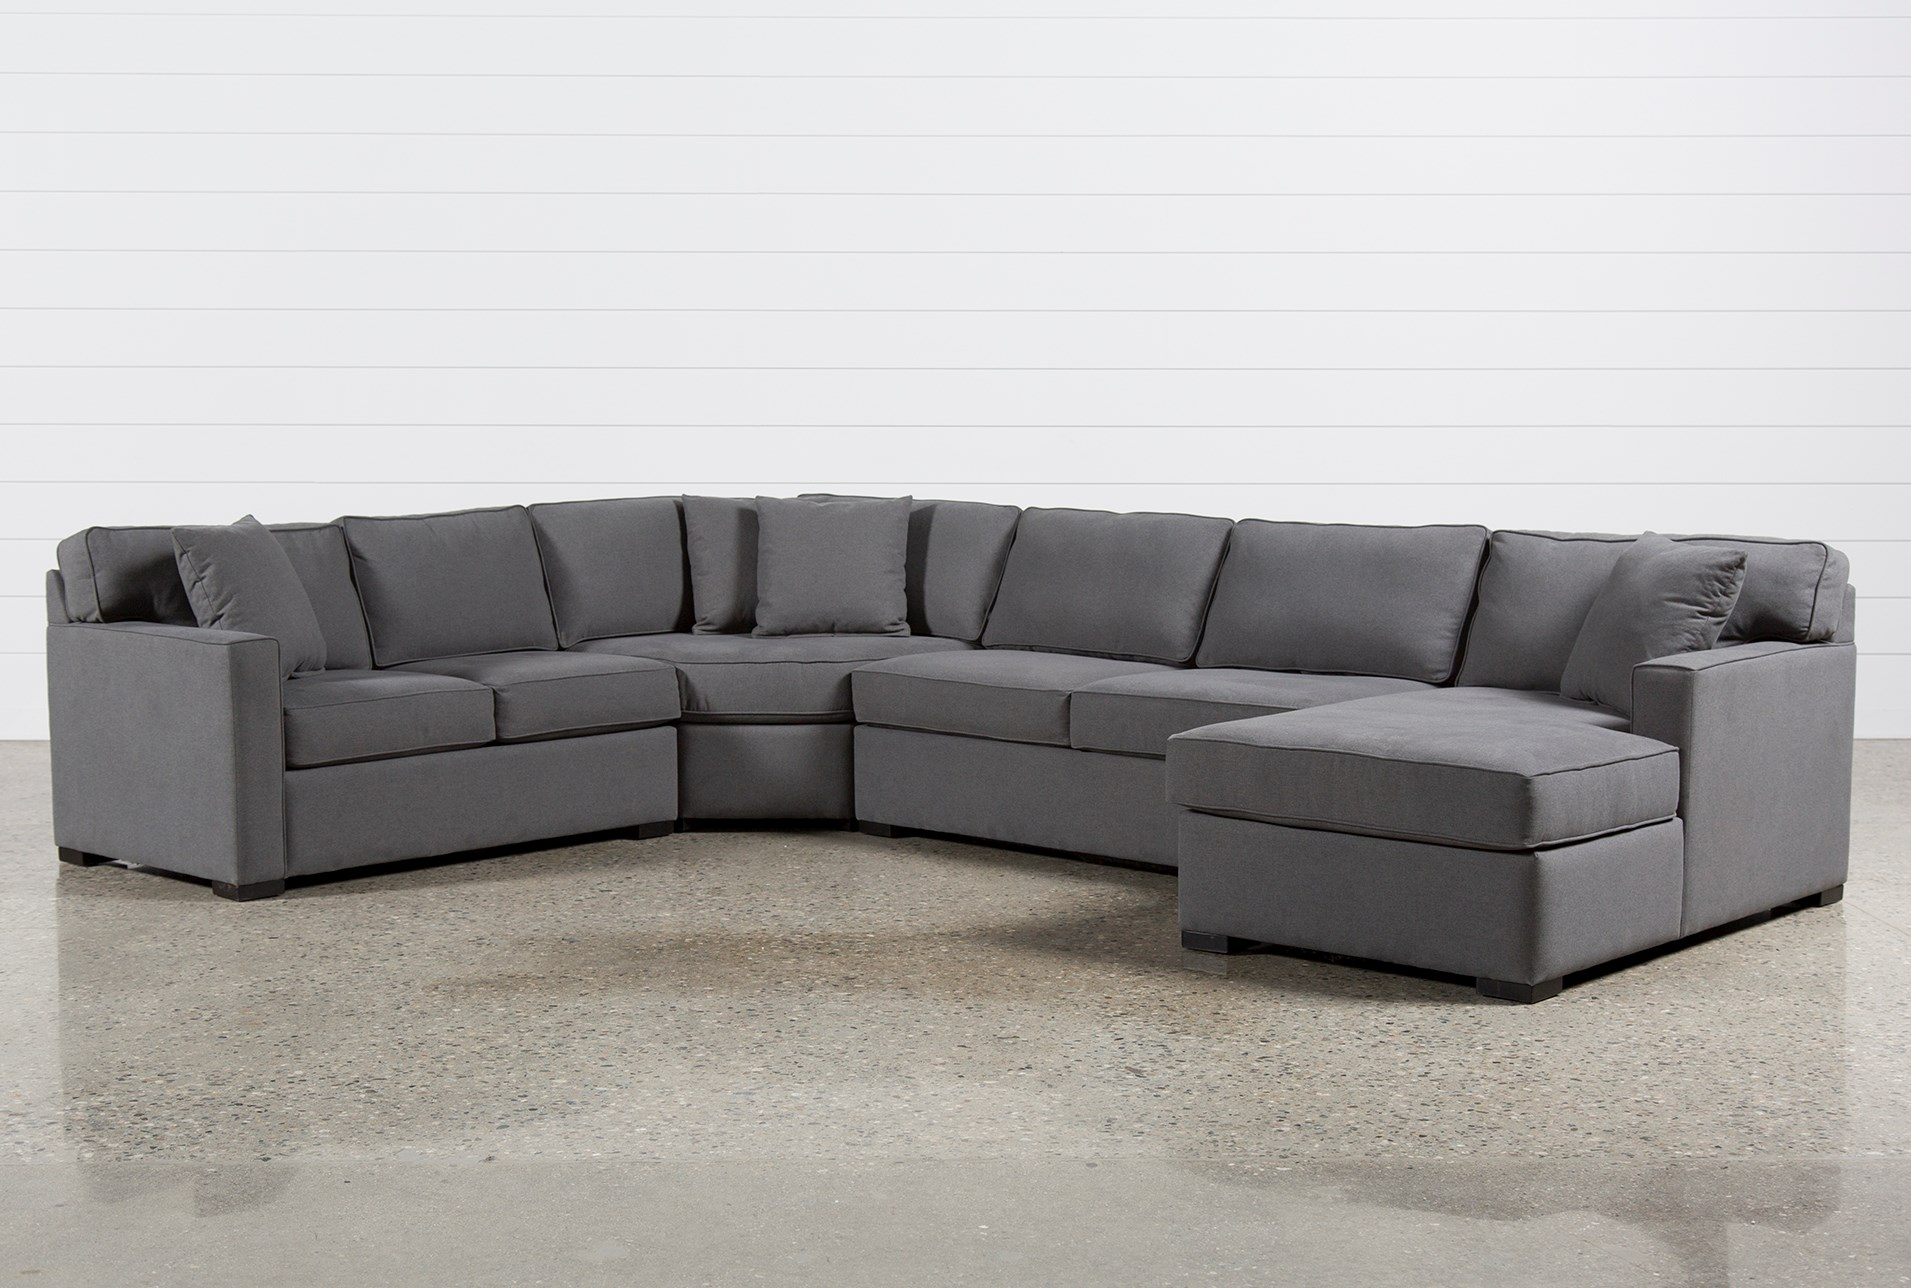 Transitional Sectionals Sectional Sofas Free Assembly With  ~ What Is A Transitional Sofa